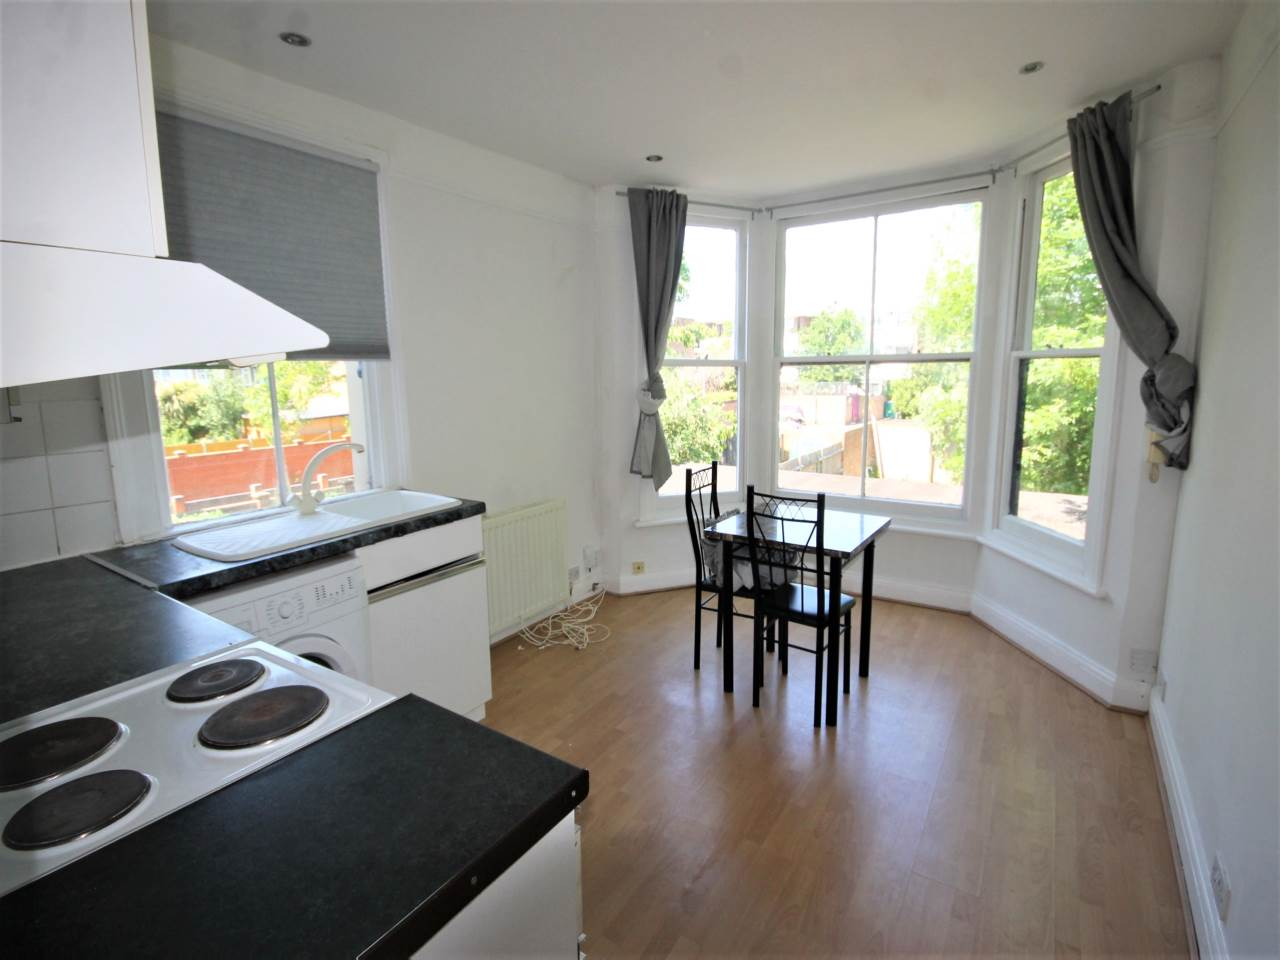 1 bed flat to rent in Hainault Road, Leytonstone, E11